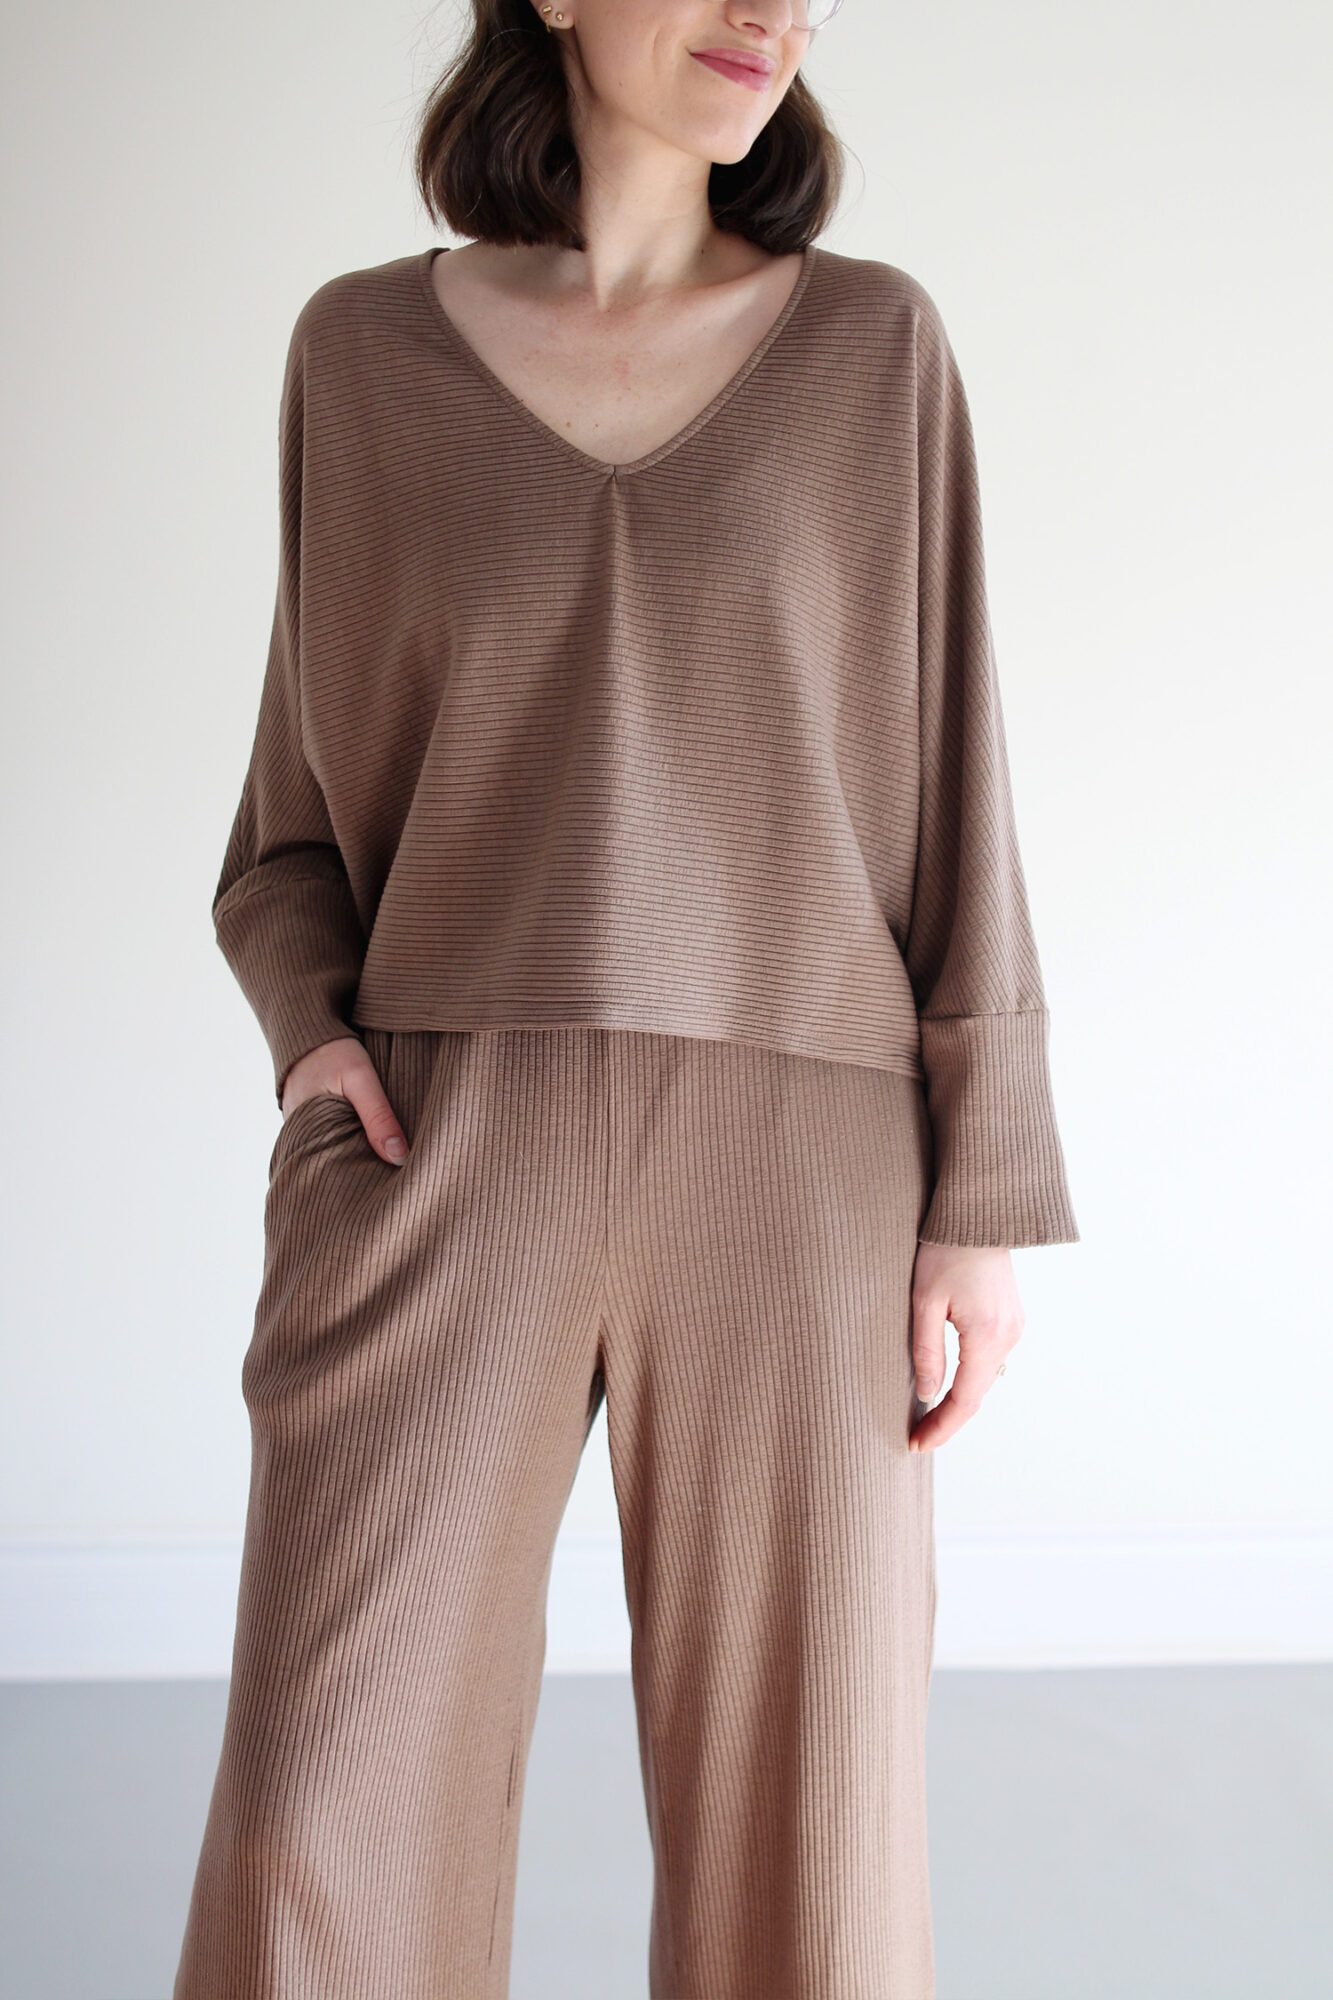 Woman wearing a cozy taupe cardigan over a matching minimalist lounge set in a taupe ribbed knit with fluffy slippers and clear framed glasses.